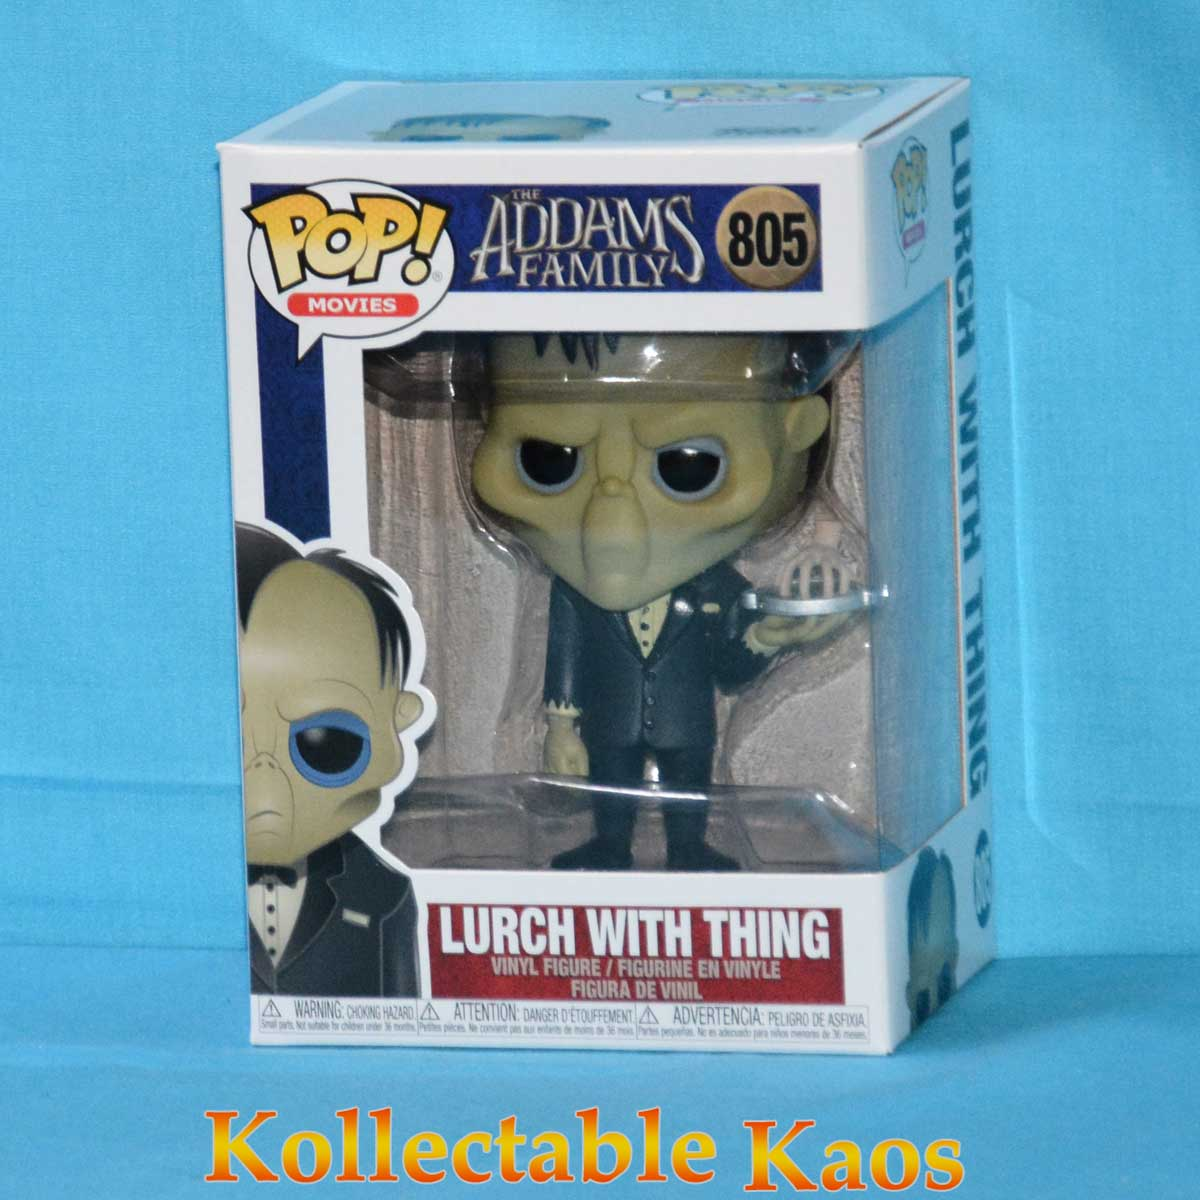 The Addams Family Lurch with Thing Pop Movies Figure de Vinyle 805